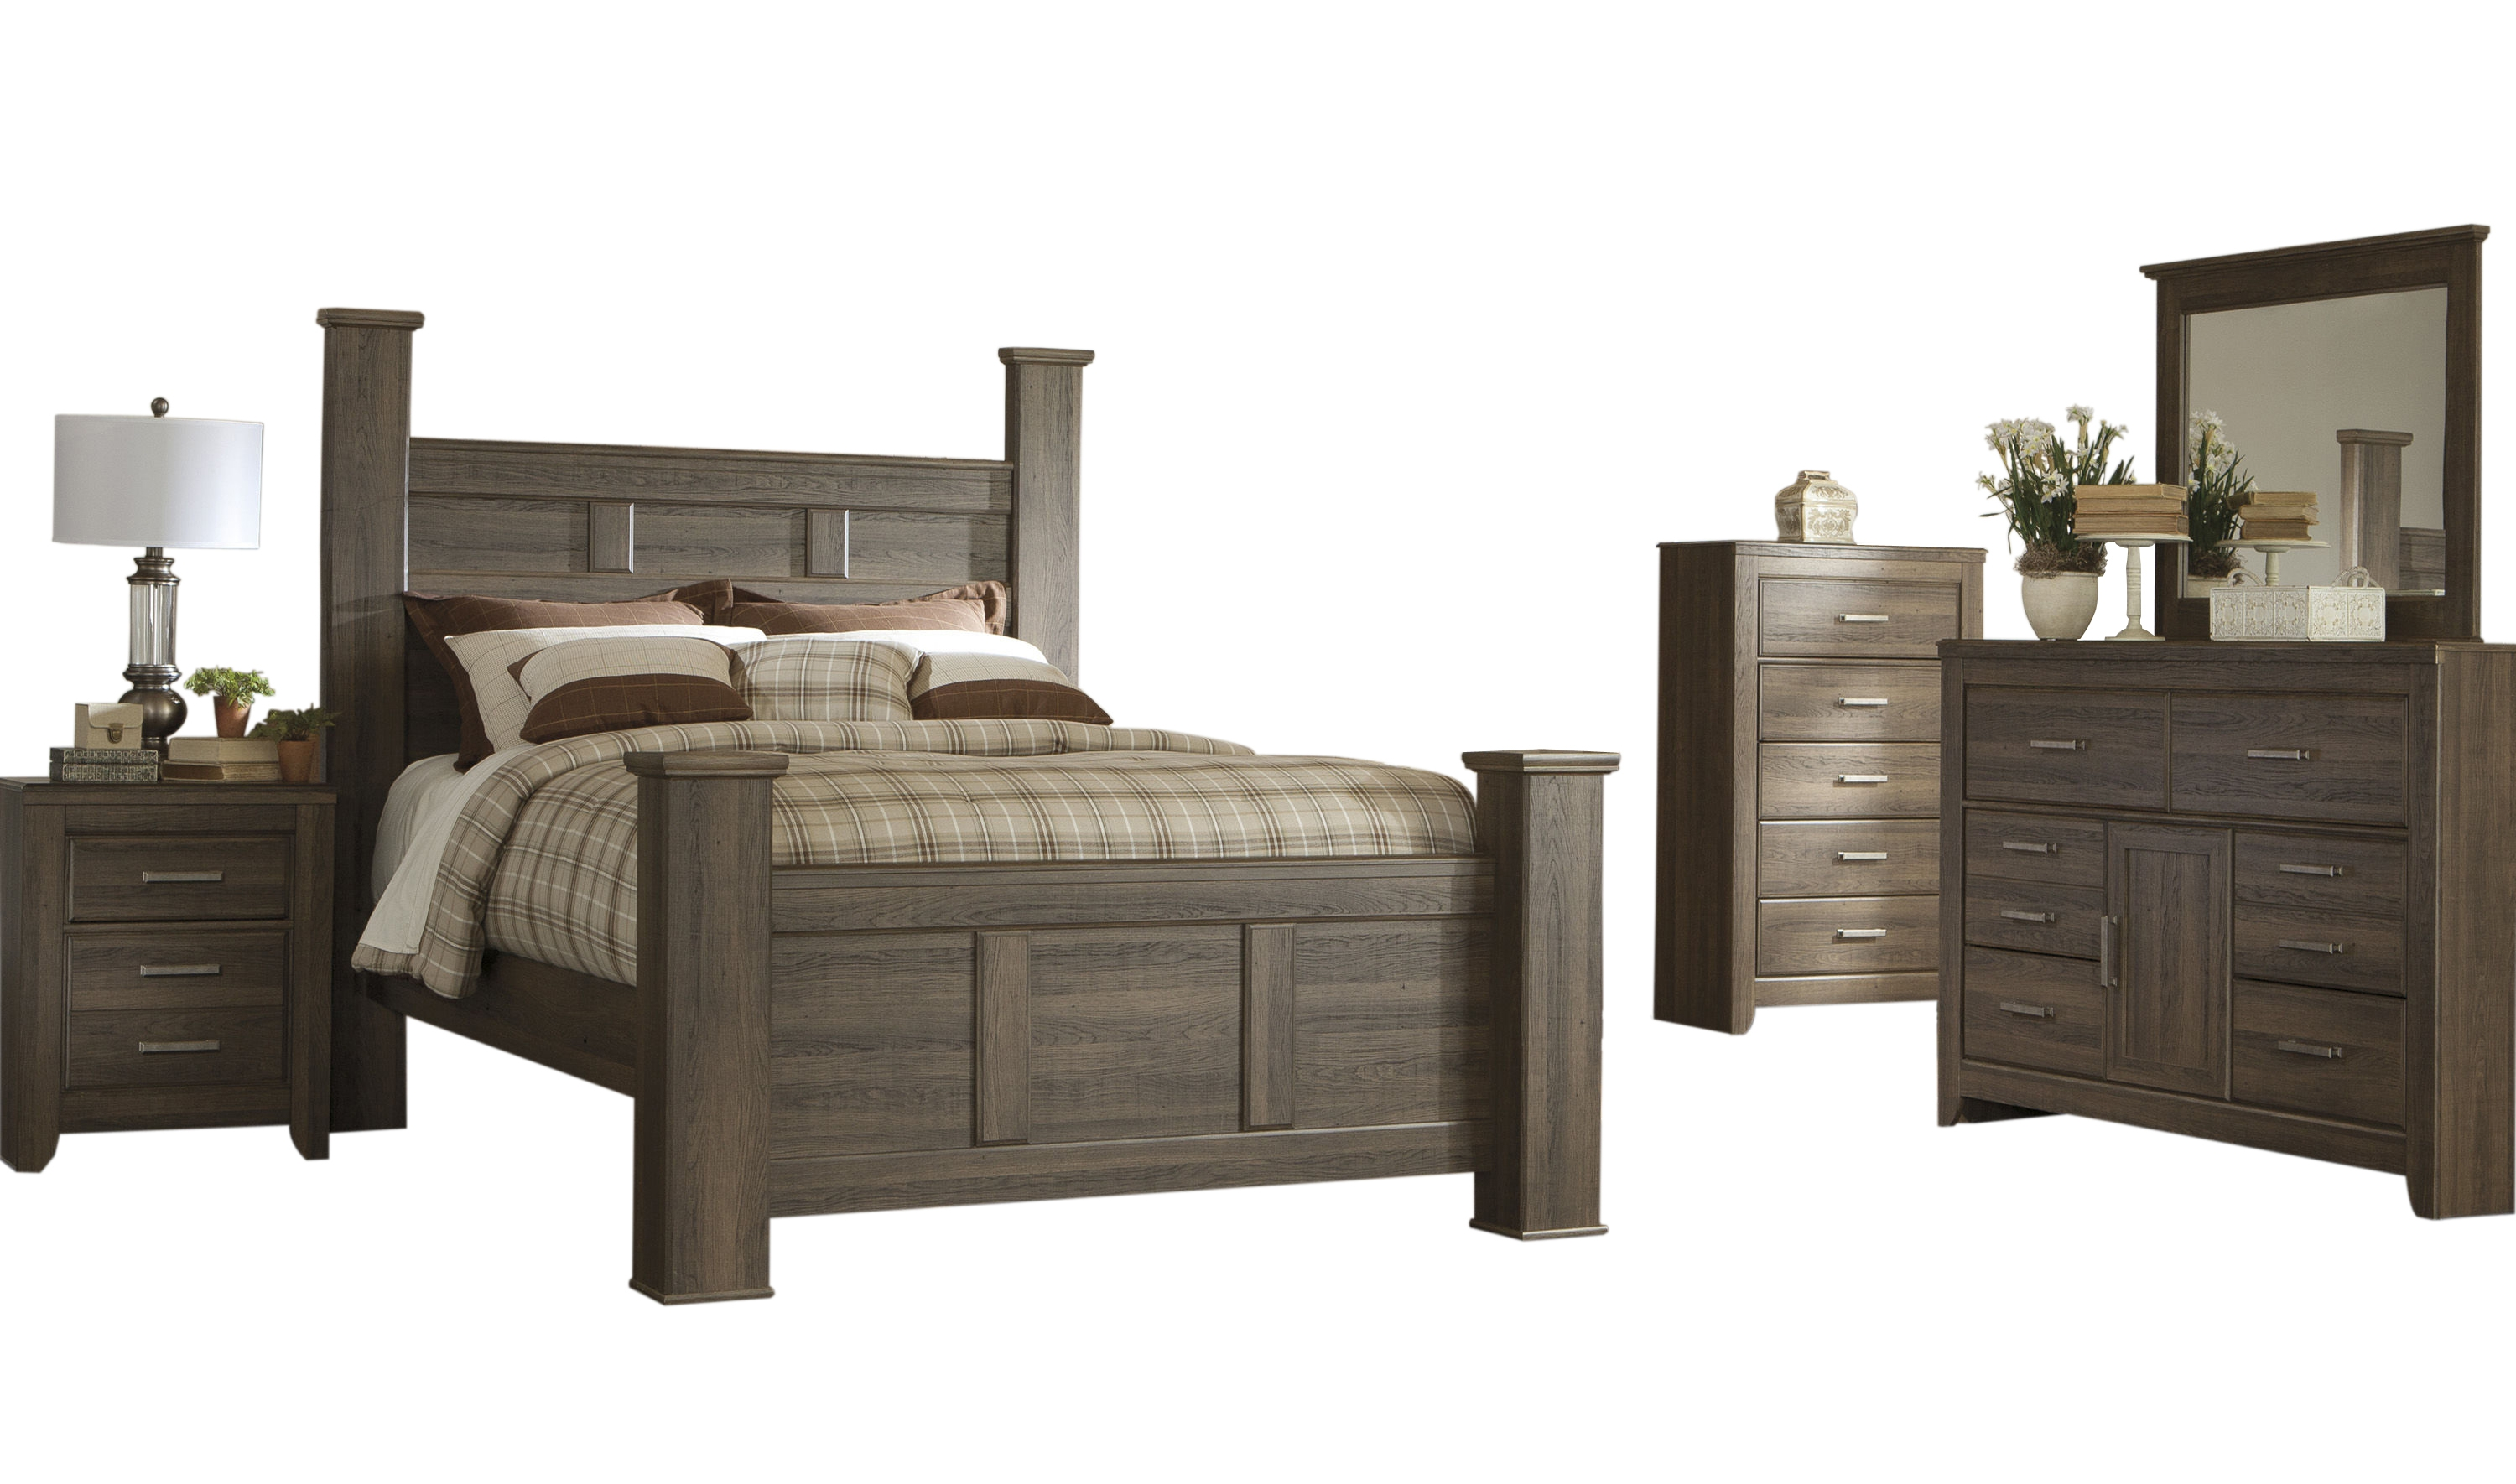 Ashley furniture juararo 2pc bedroom set with queen poster bed the classy home for Ashley bedroom furniture prices